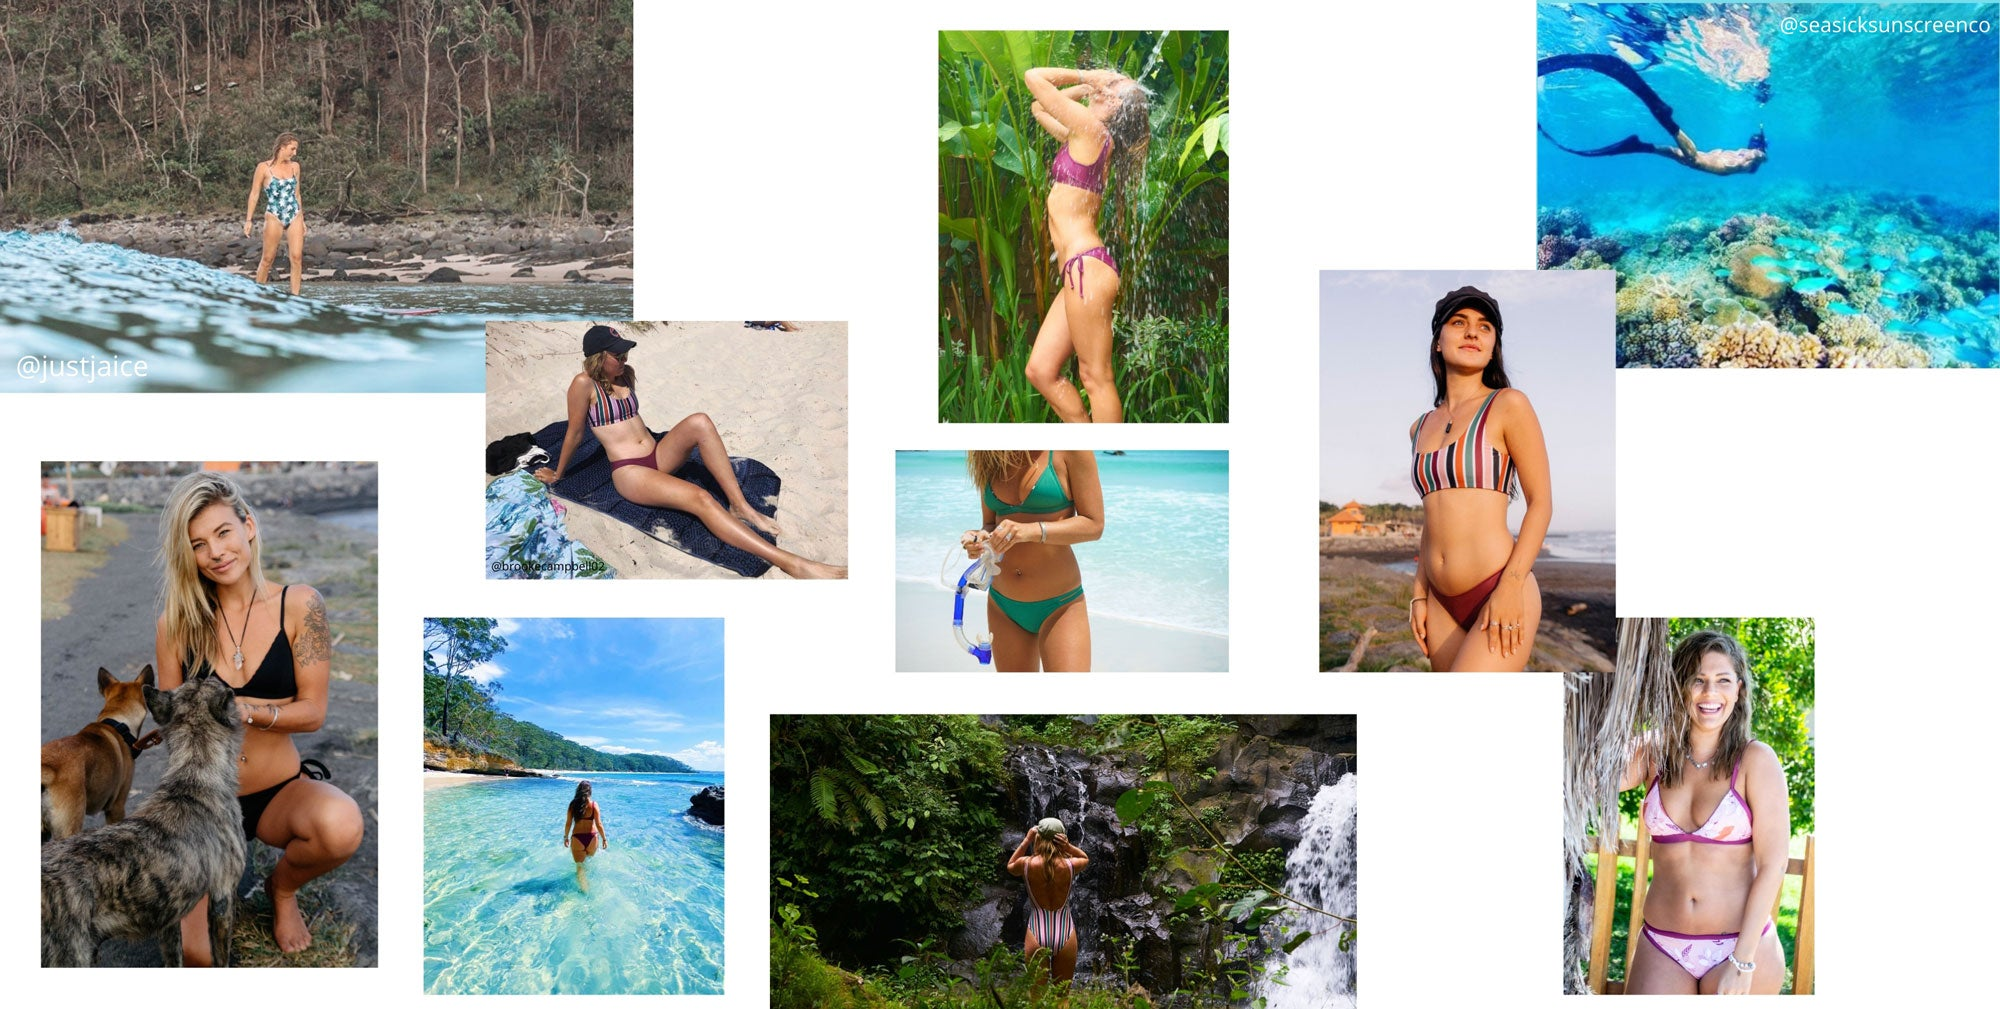 Sustainable swimwear. Women's reversible bikinis, one pieces and surf suits made from recycled plastics